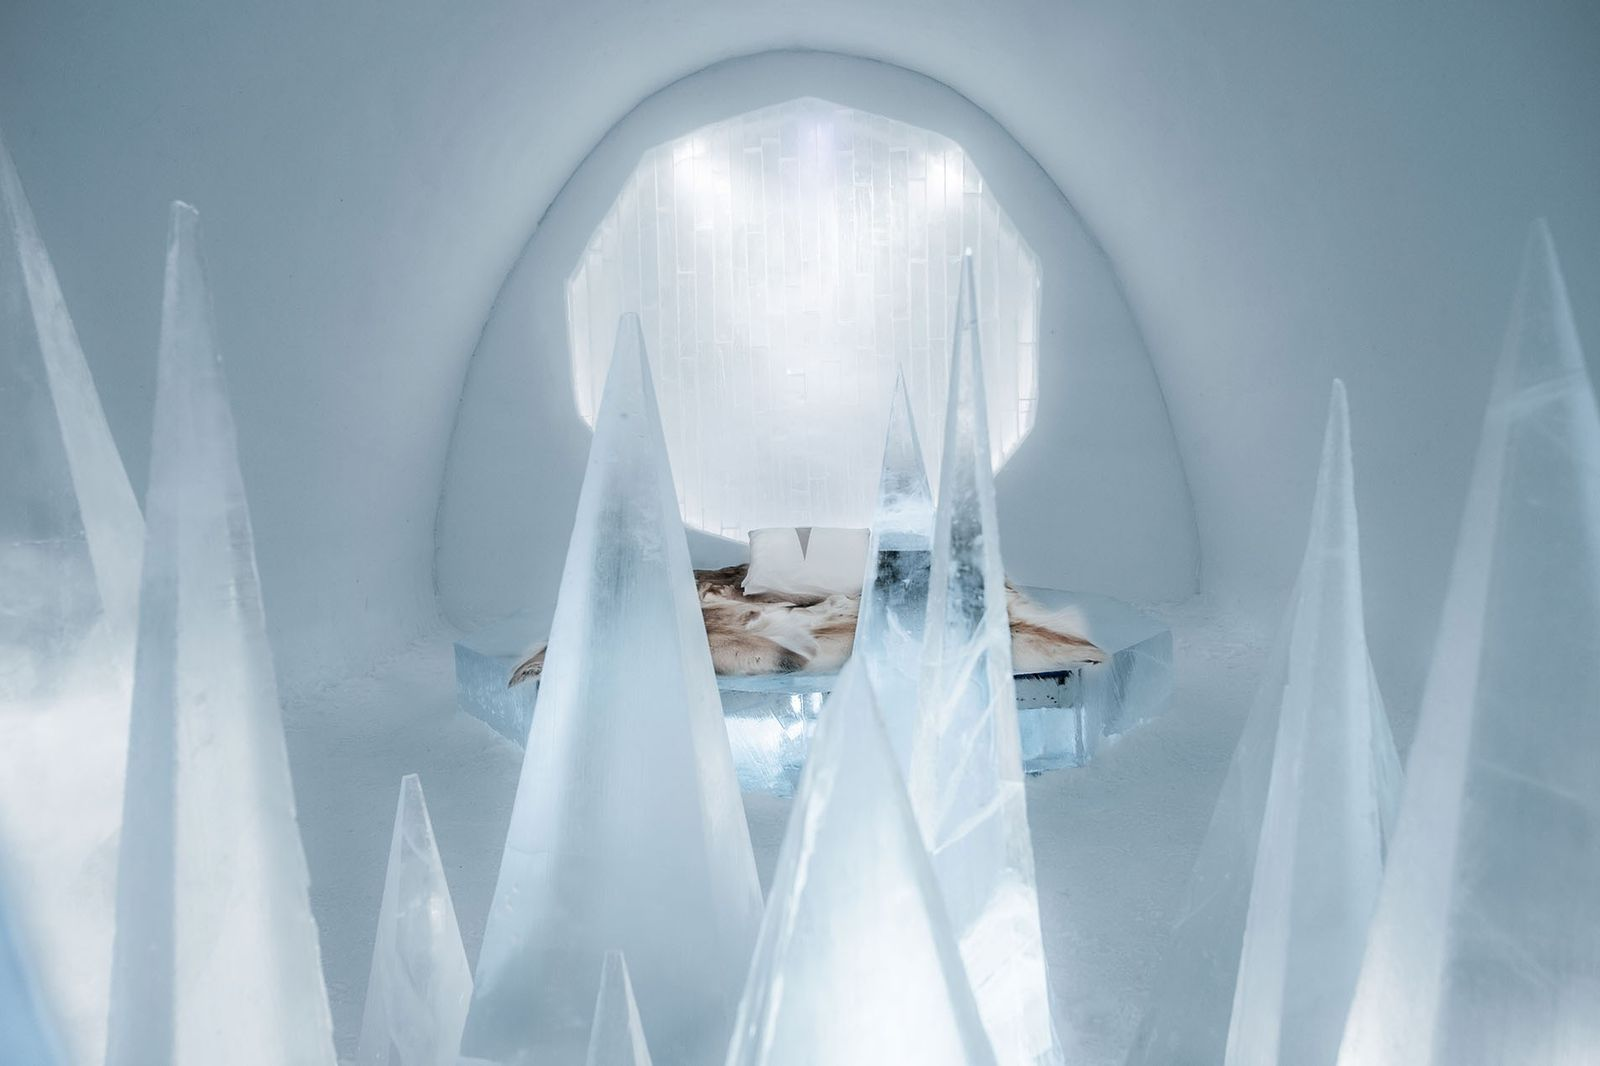 The super-cool art suite at Icehotel in Jukkasjärvi.